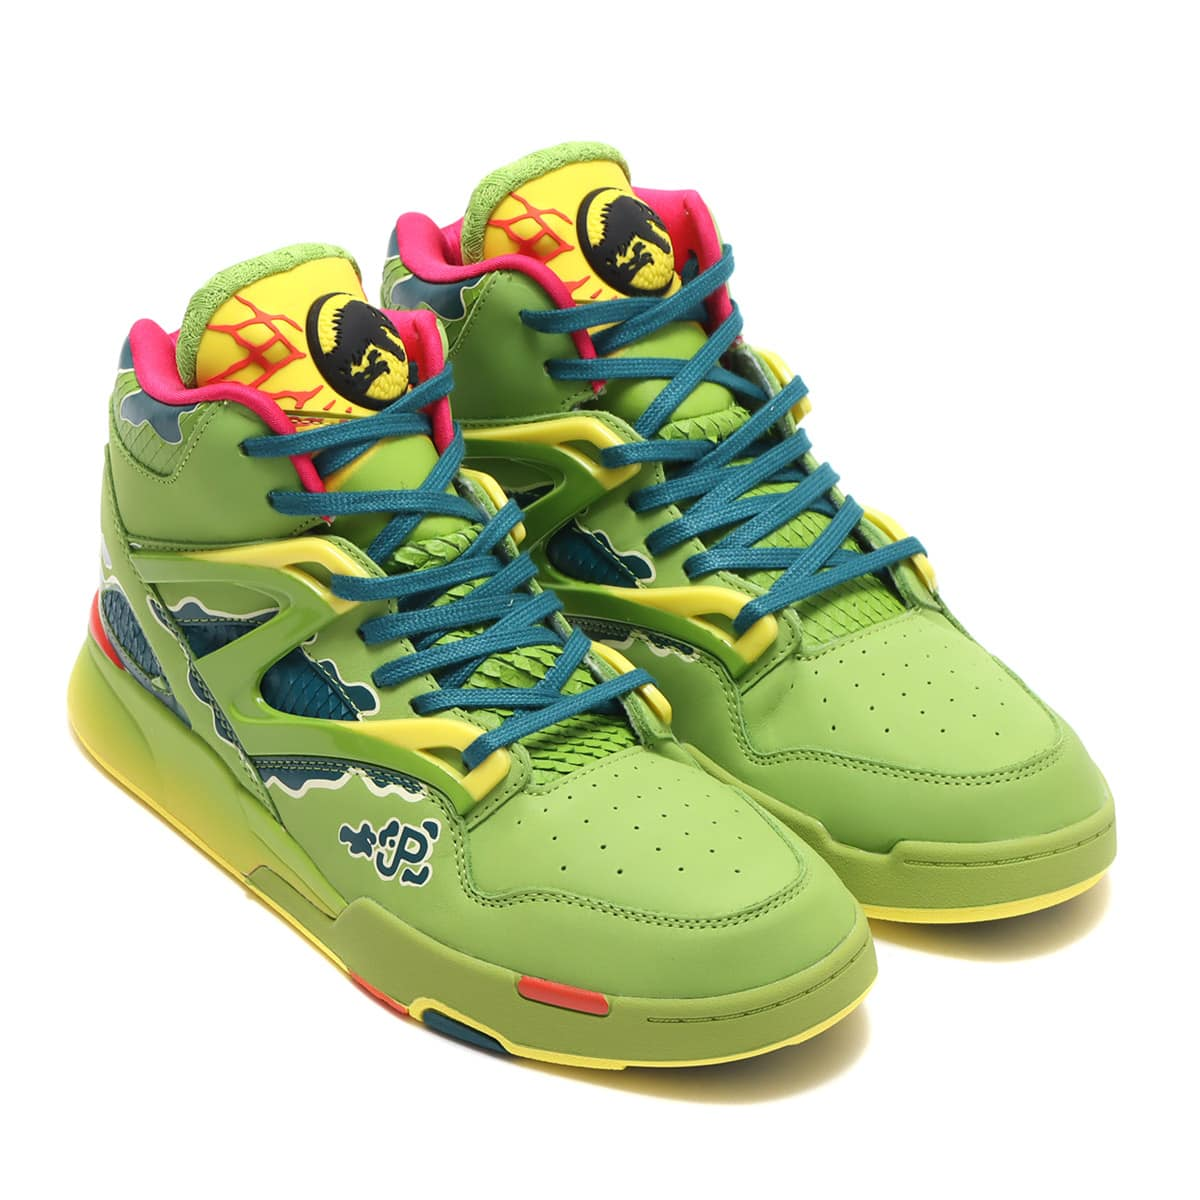 Reebok PUMP OMNI ZONE II ULTRA LIME/HERITAGE TEAL/STINGY YELLOW 21SS-S_photo_large